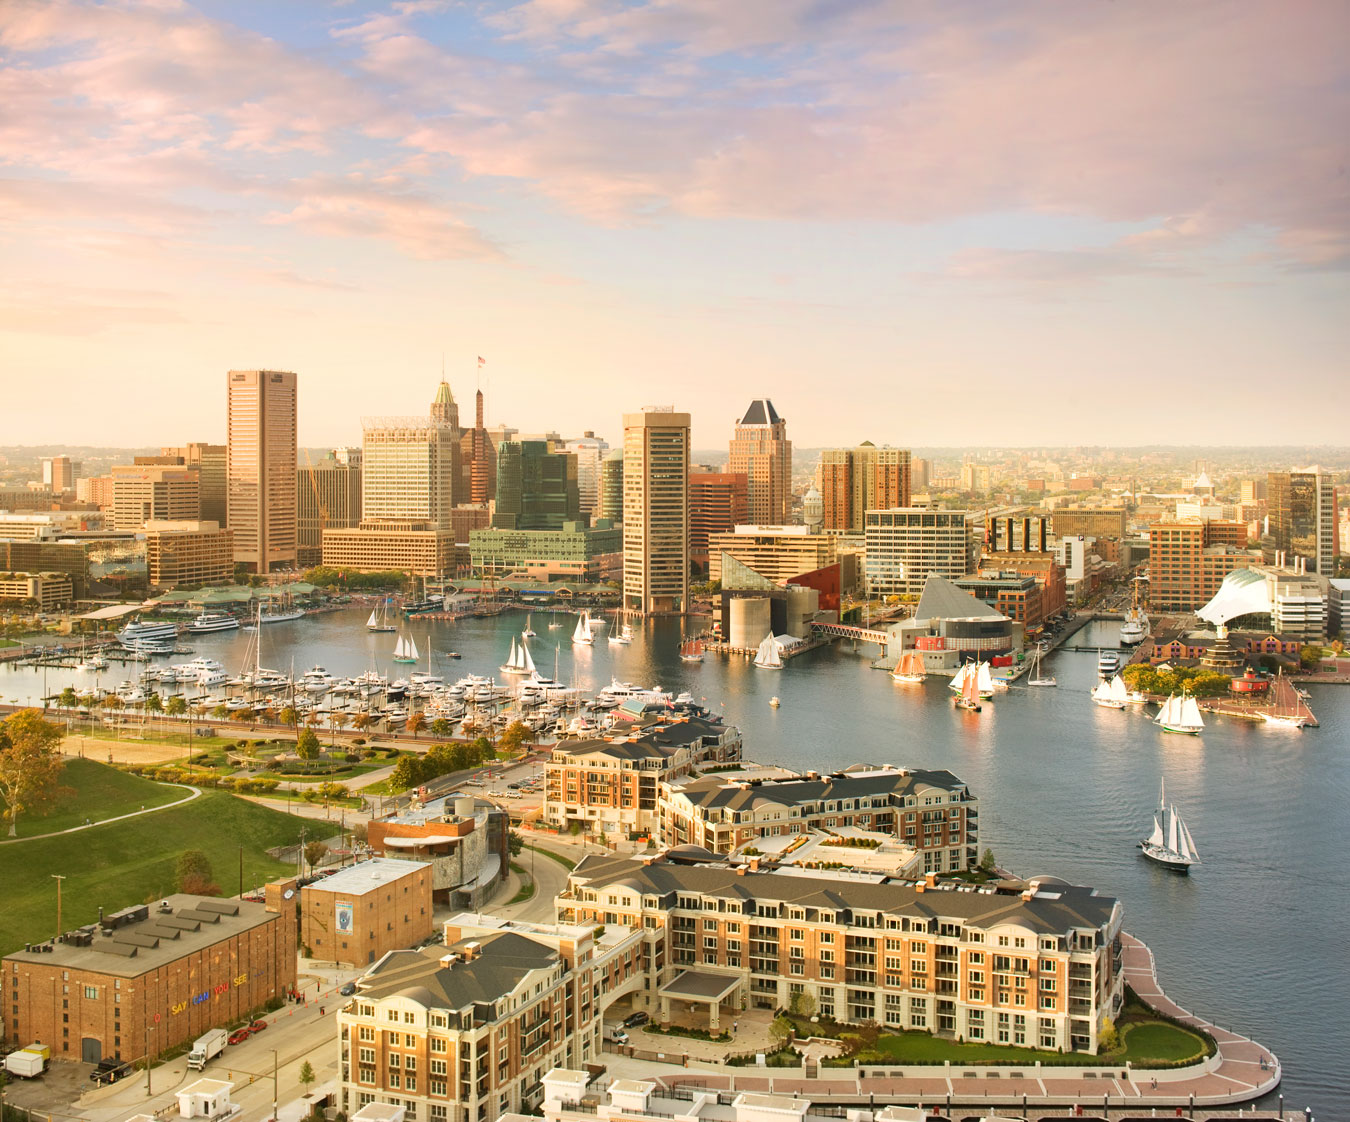 A beautiful afternoon cityscape of Baltimore, Maryland.